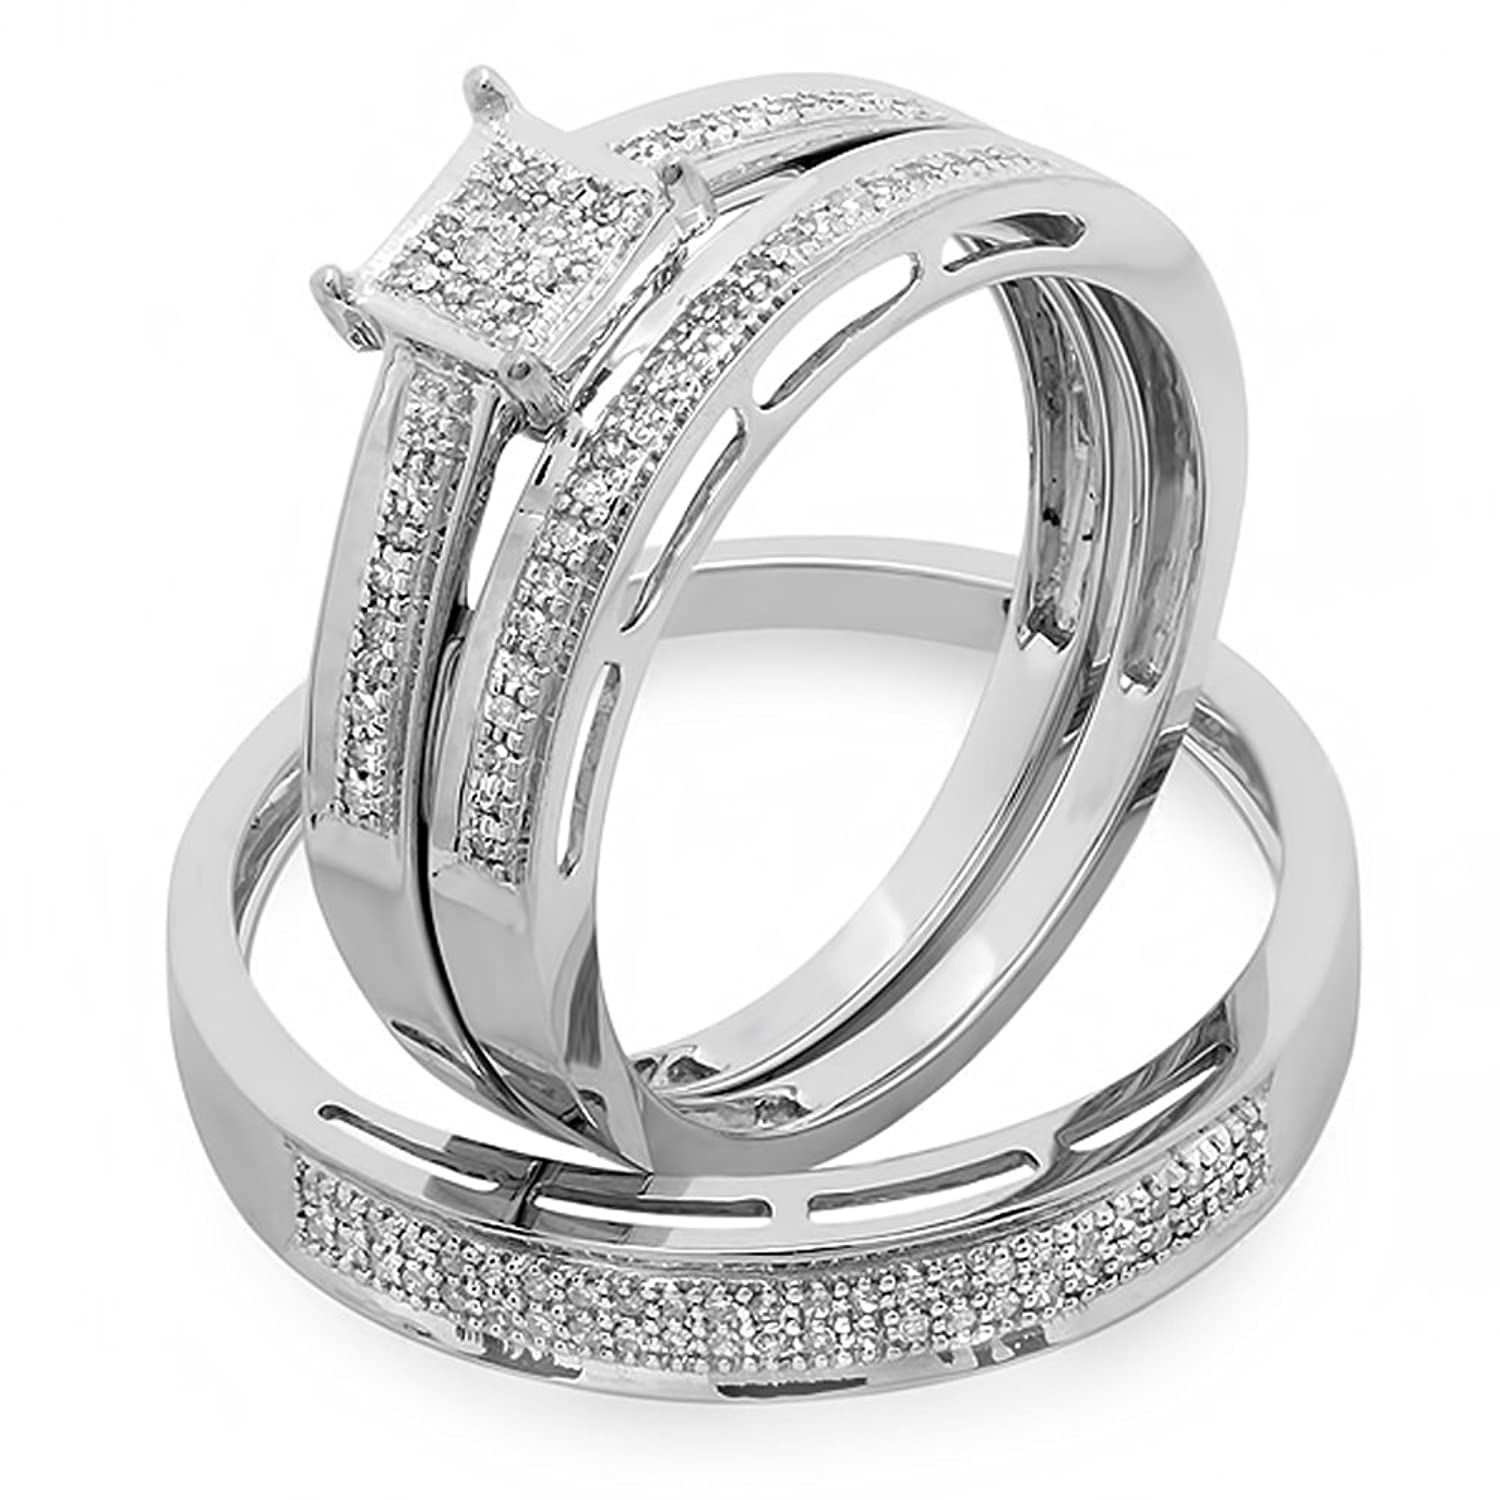 0.18 Carat (ctw) 10K White Gold Round Diamond Ladies & Mens His Hers Bridal Engagement Ring Trio Set